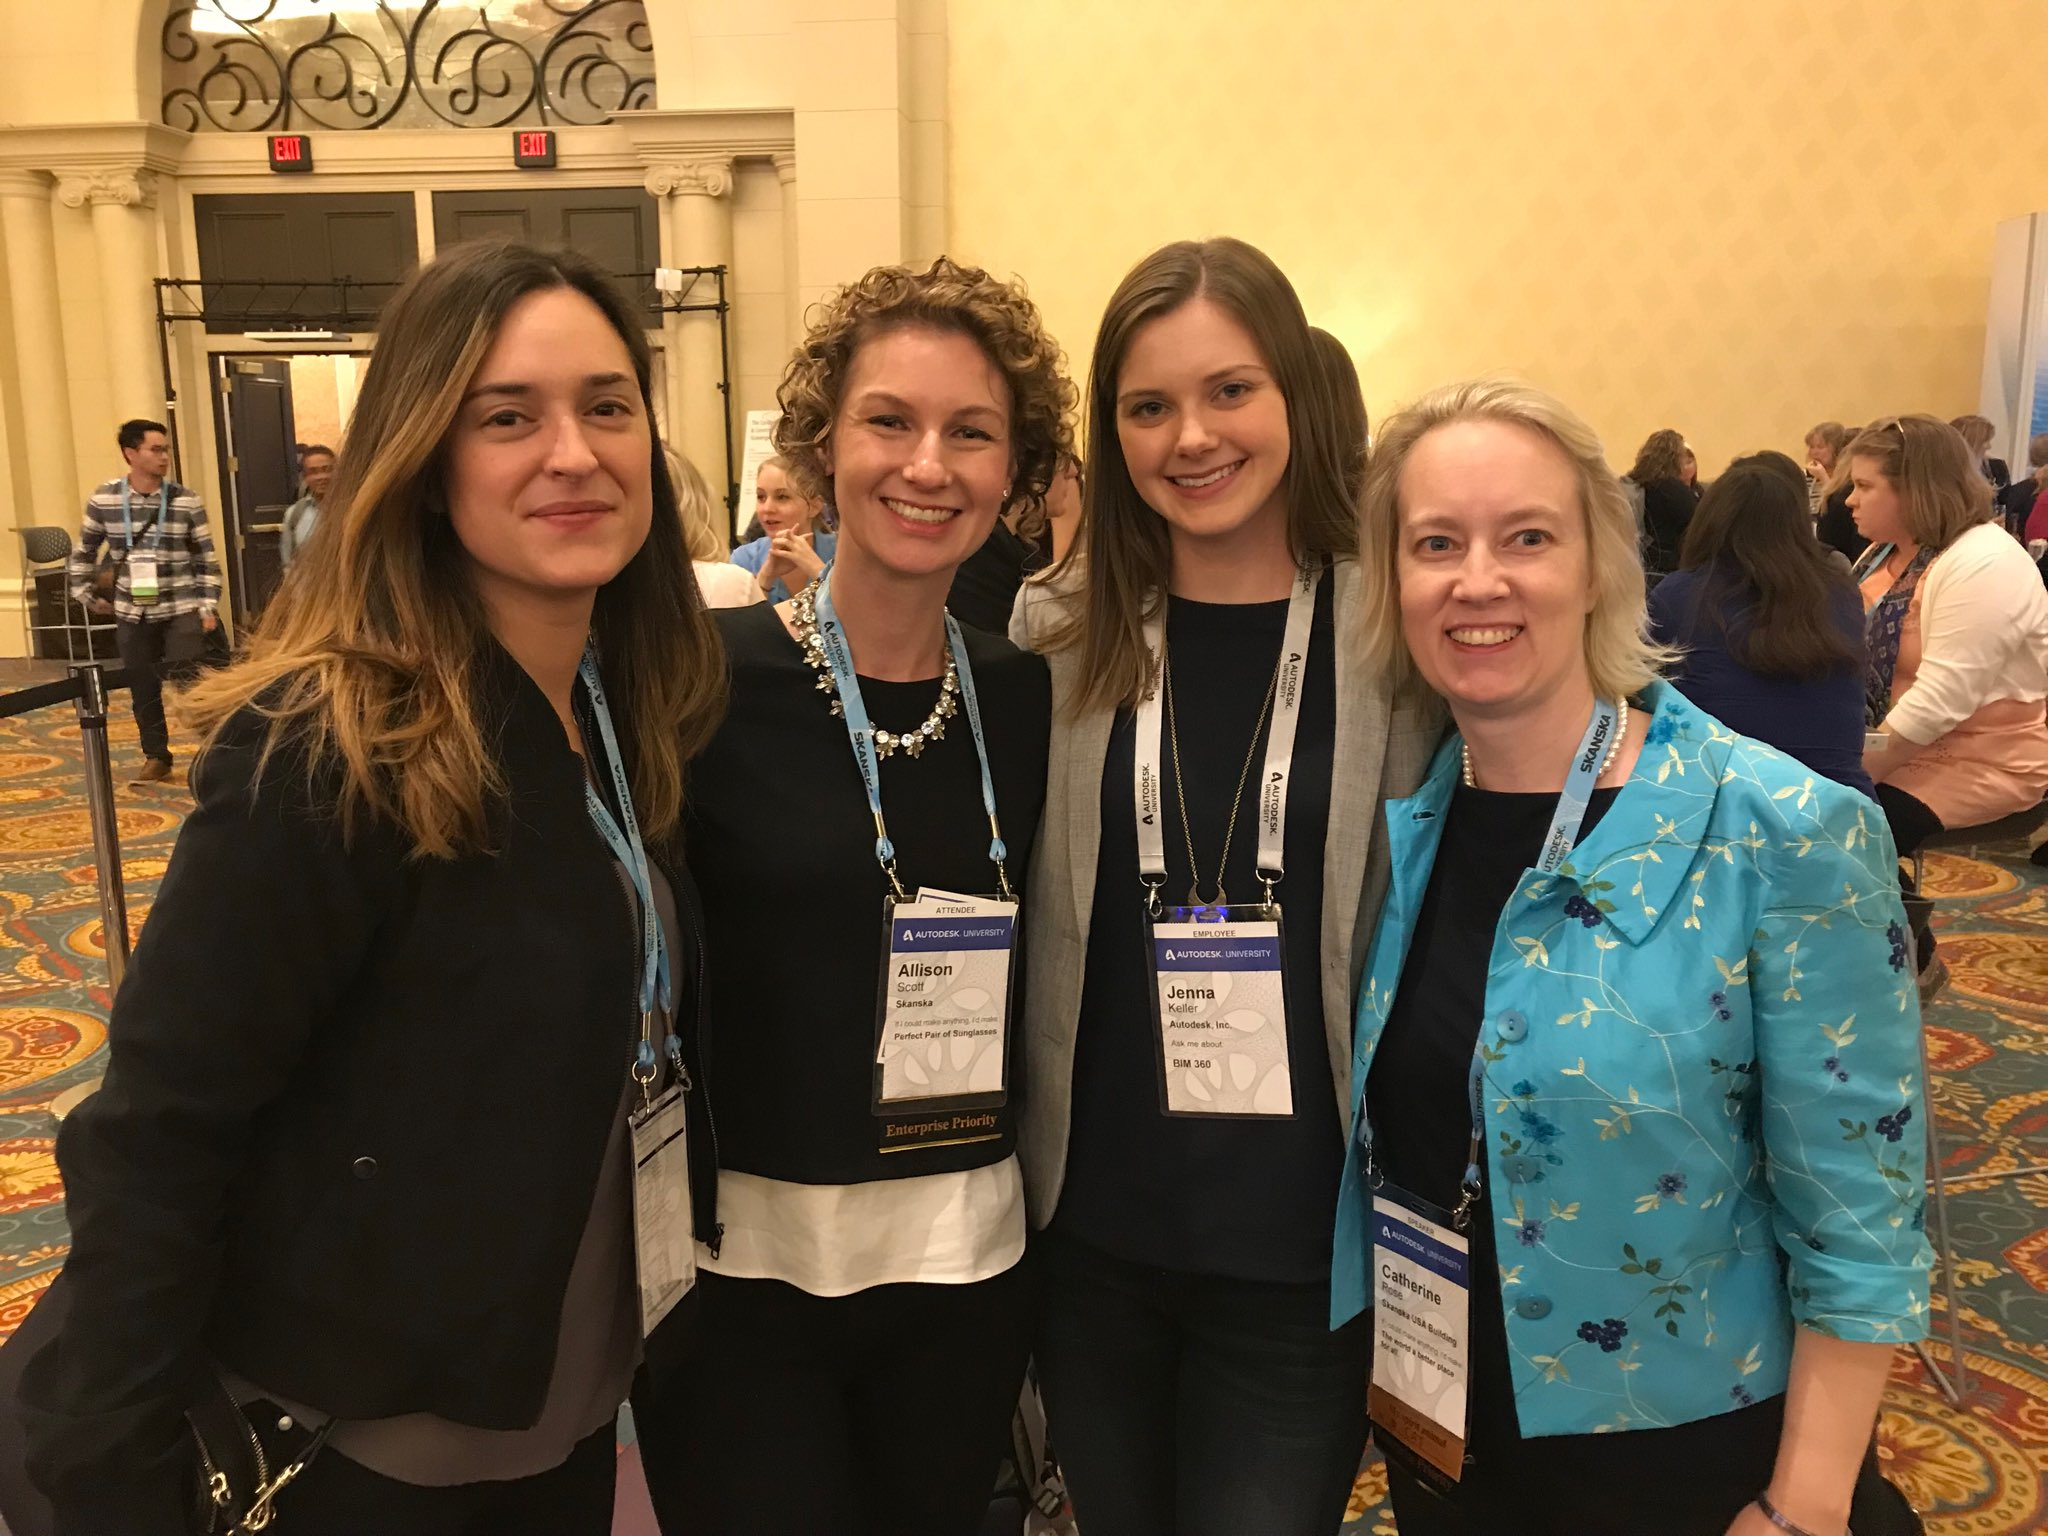 Scott joined several colleagues at the Women in Construction networking event at Autodesk University in 2017.